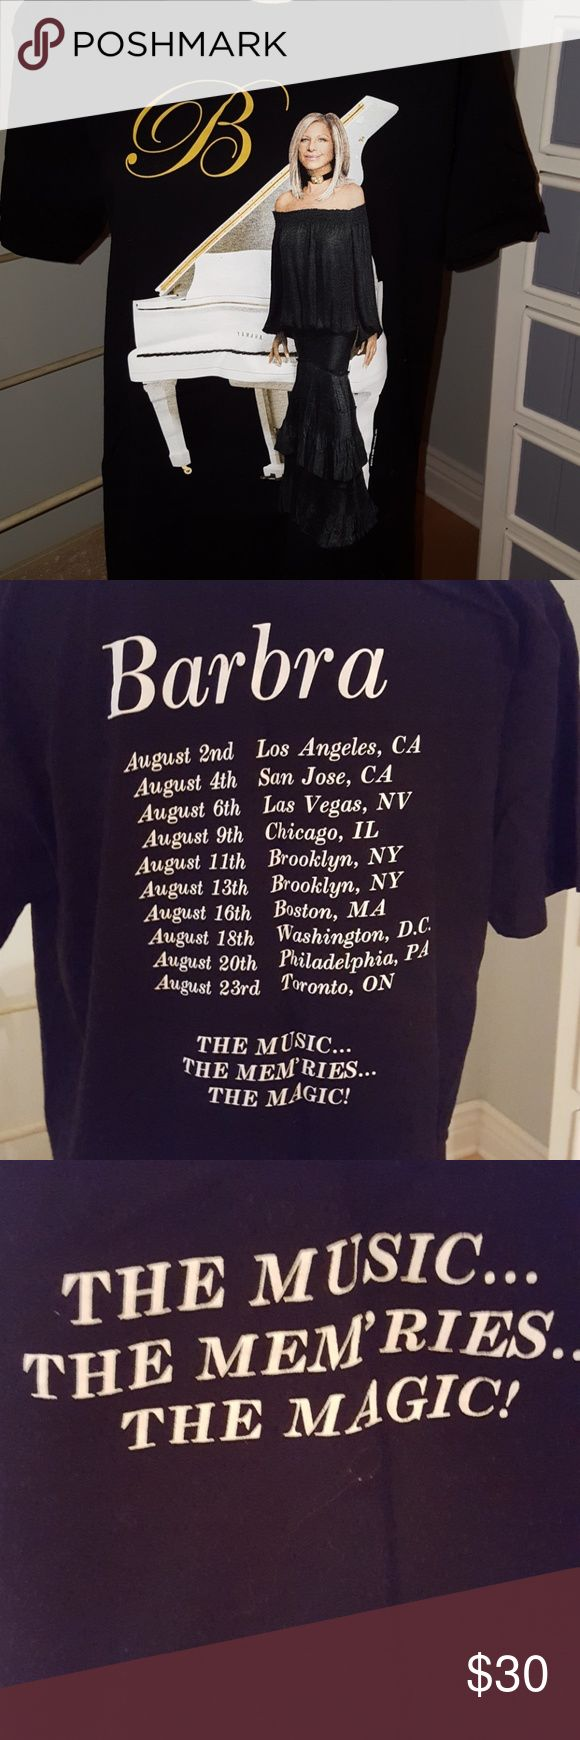 Barbra Streisand 2016 Concert Tour Tee Black tee shirt with front and back graphics. Bsck lists concert dates from her 2016 tour. This is genuine concert merchandise purchased from the opening night in LA. Tops Tees - Short Sleeve